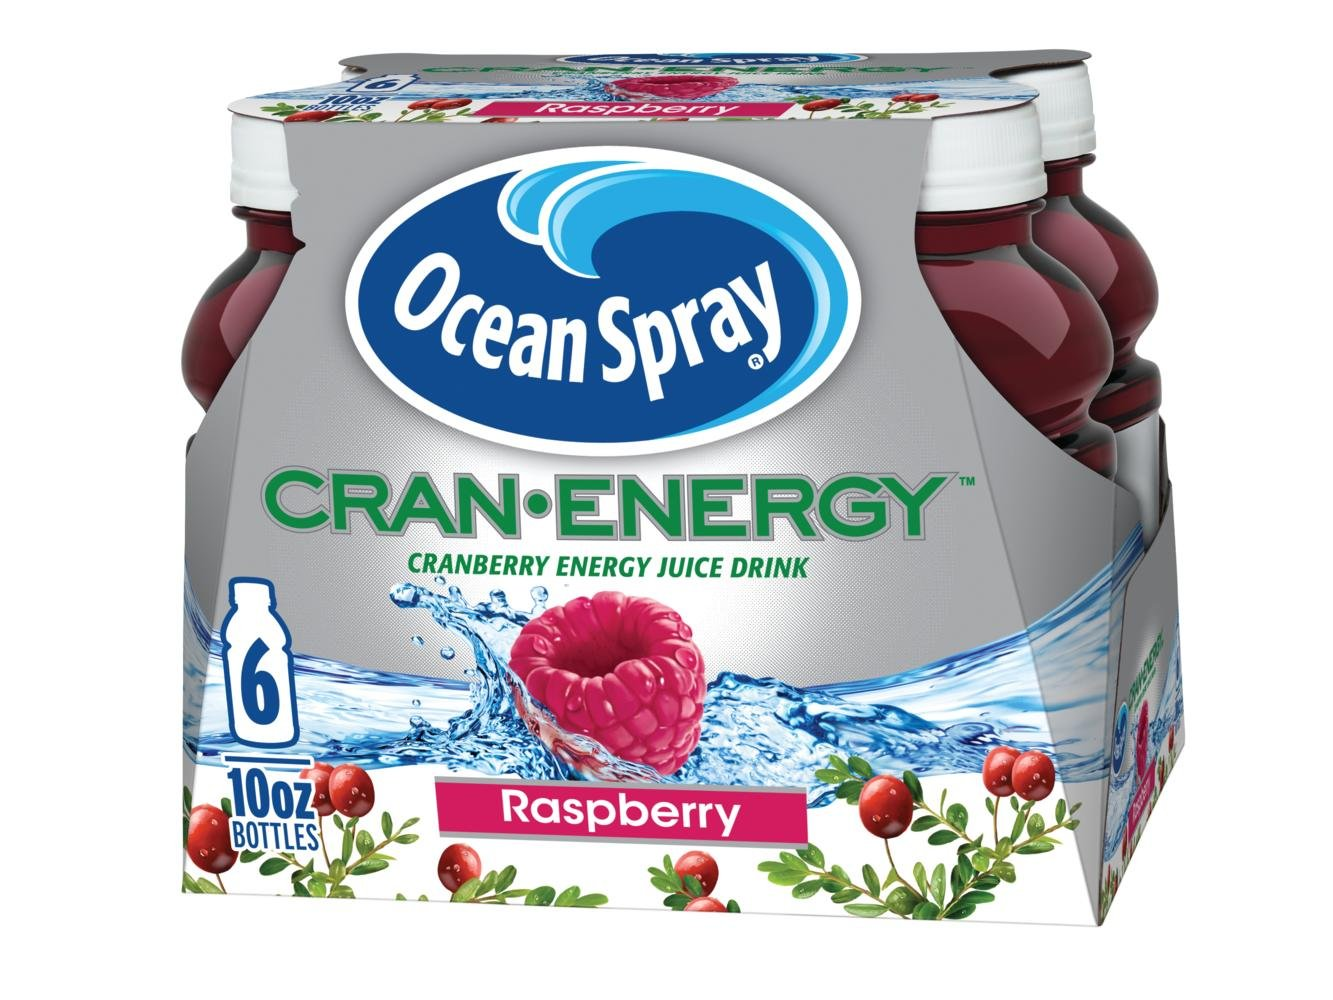 Ocean Spray Cran-Energy, Cranberry Raspberry Energy Juice Drink, 10 Ounce Bottle (Pack of 6)